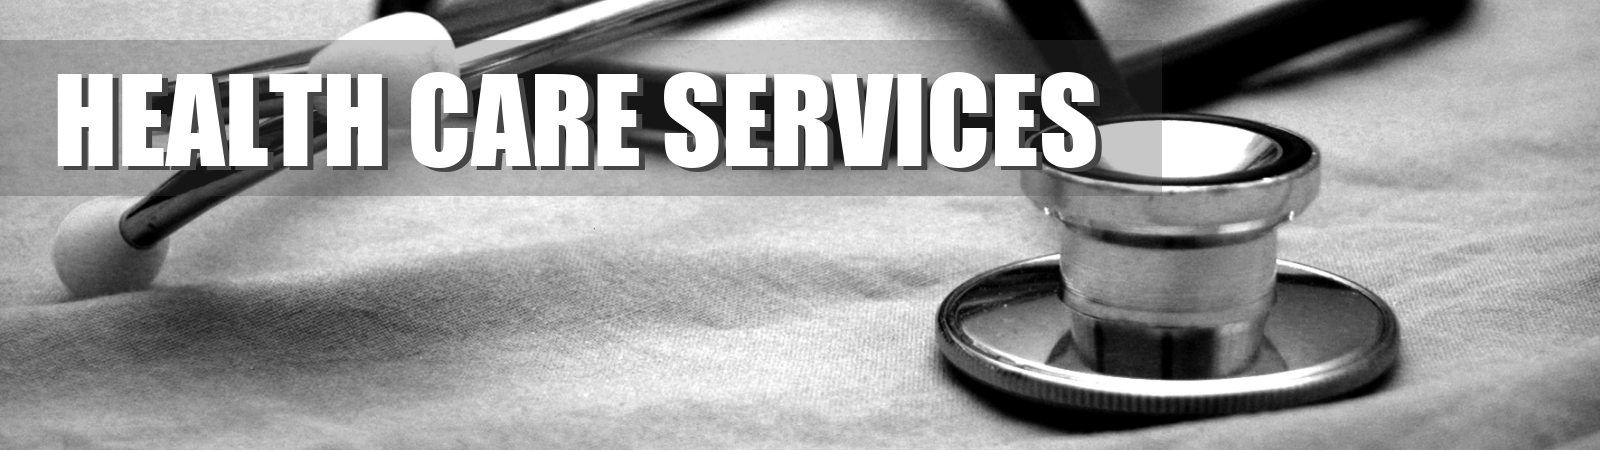 Health and Care Services